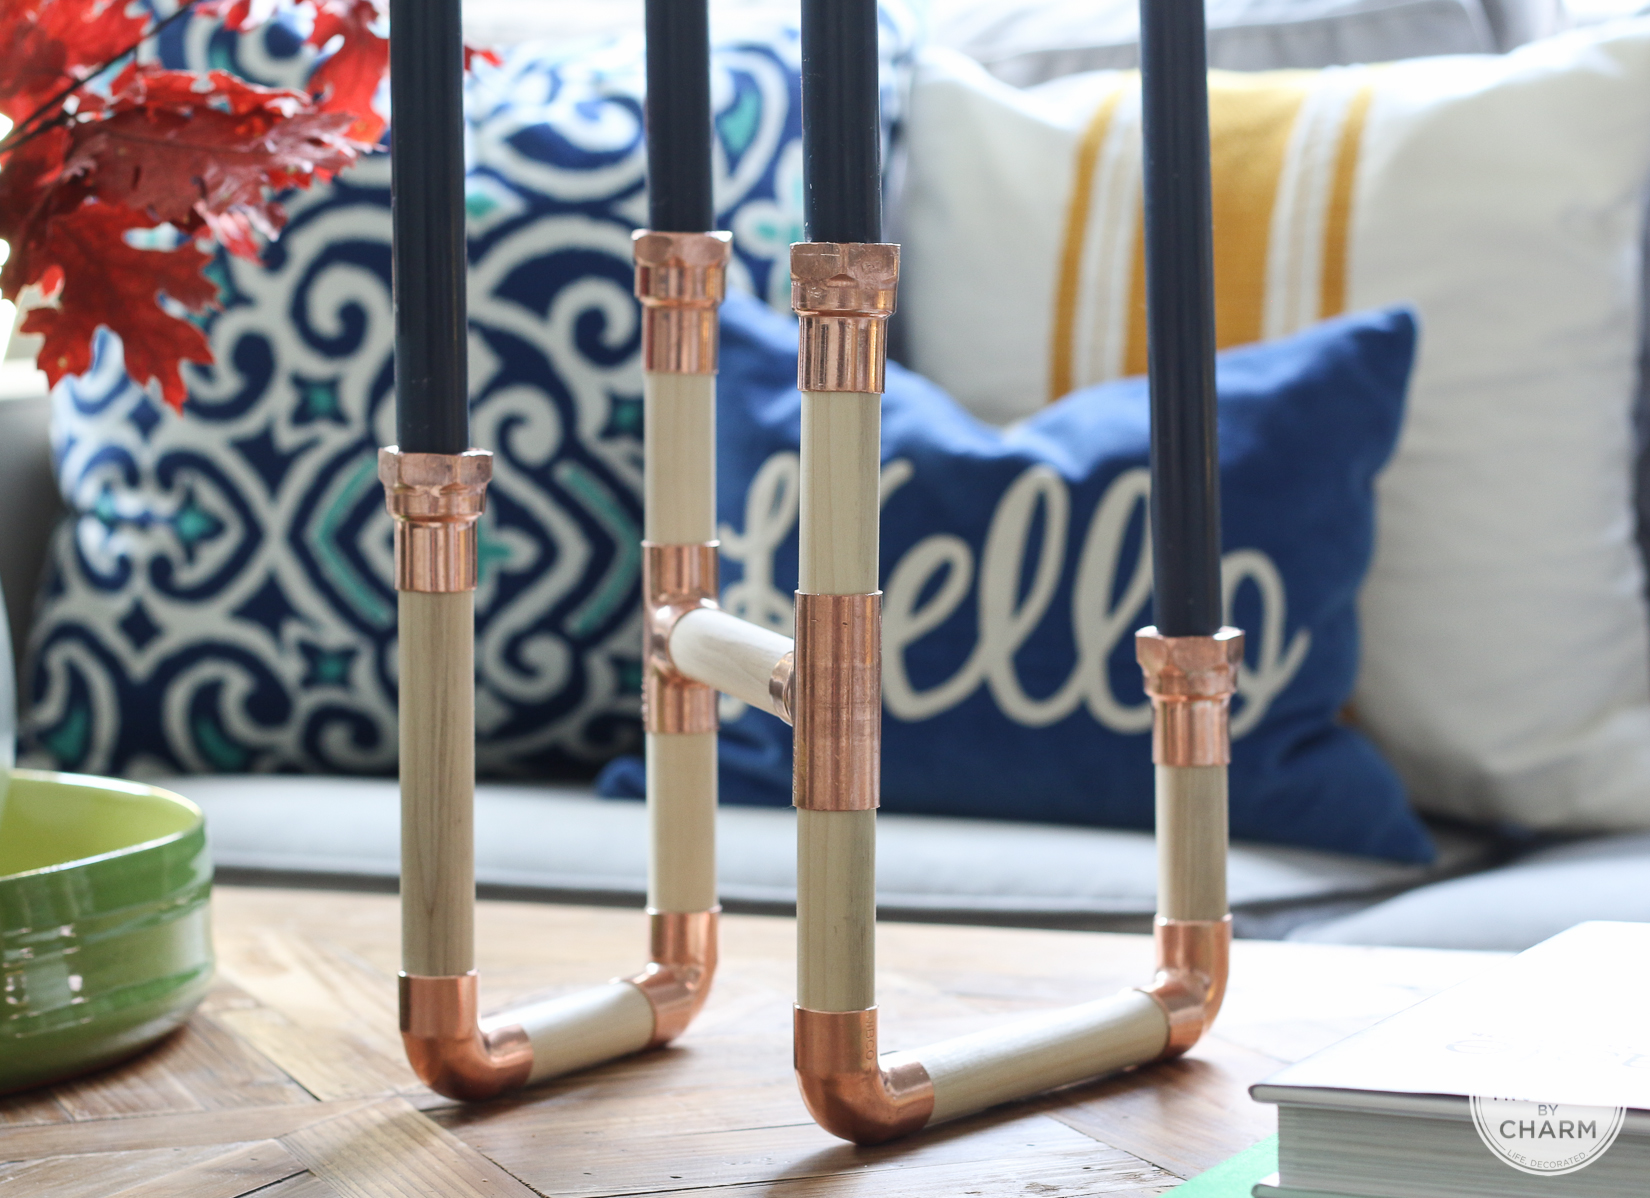 DIY Copper and Wood Candlesticks | Inspired by Charm